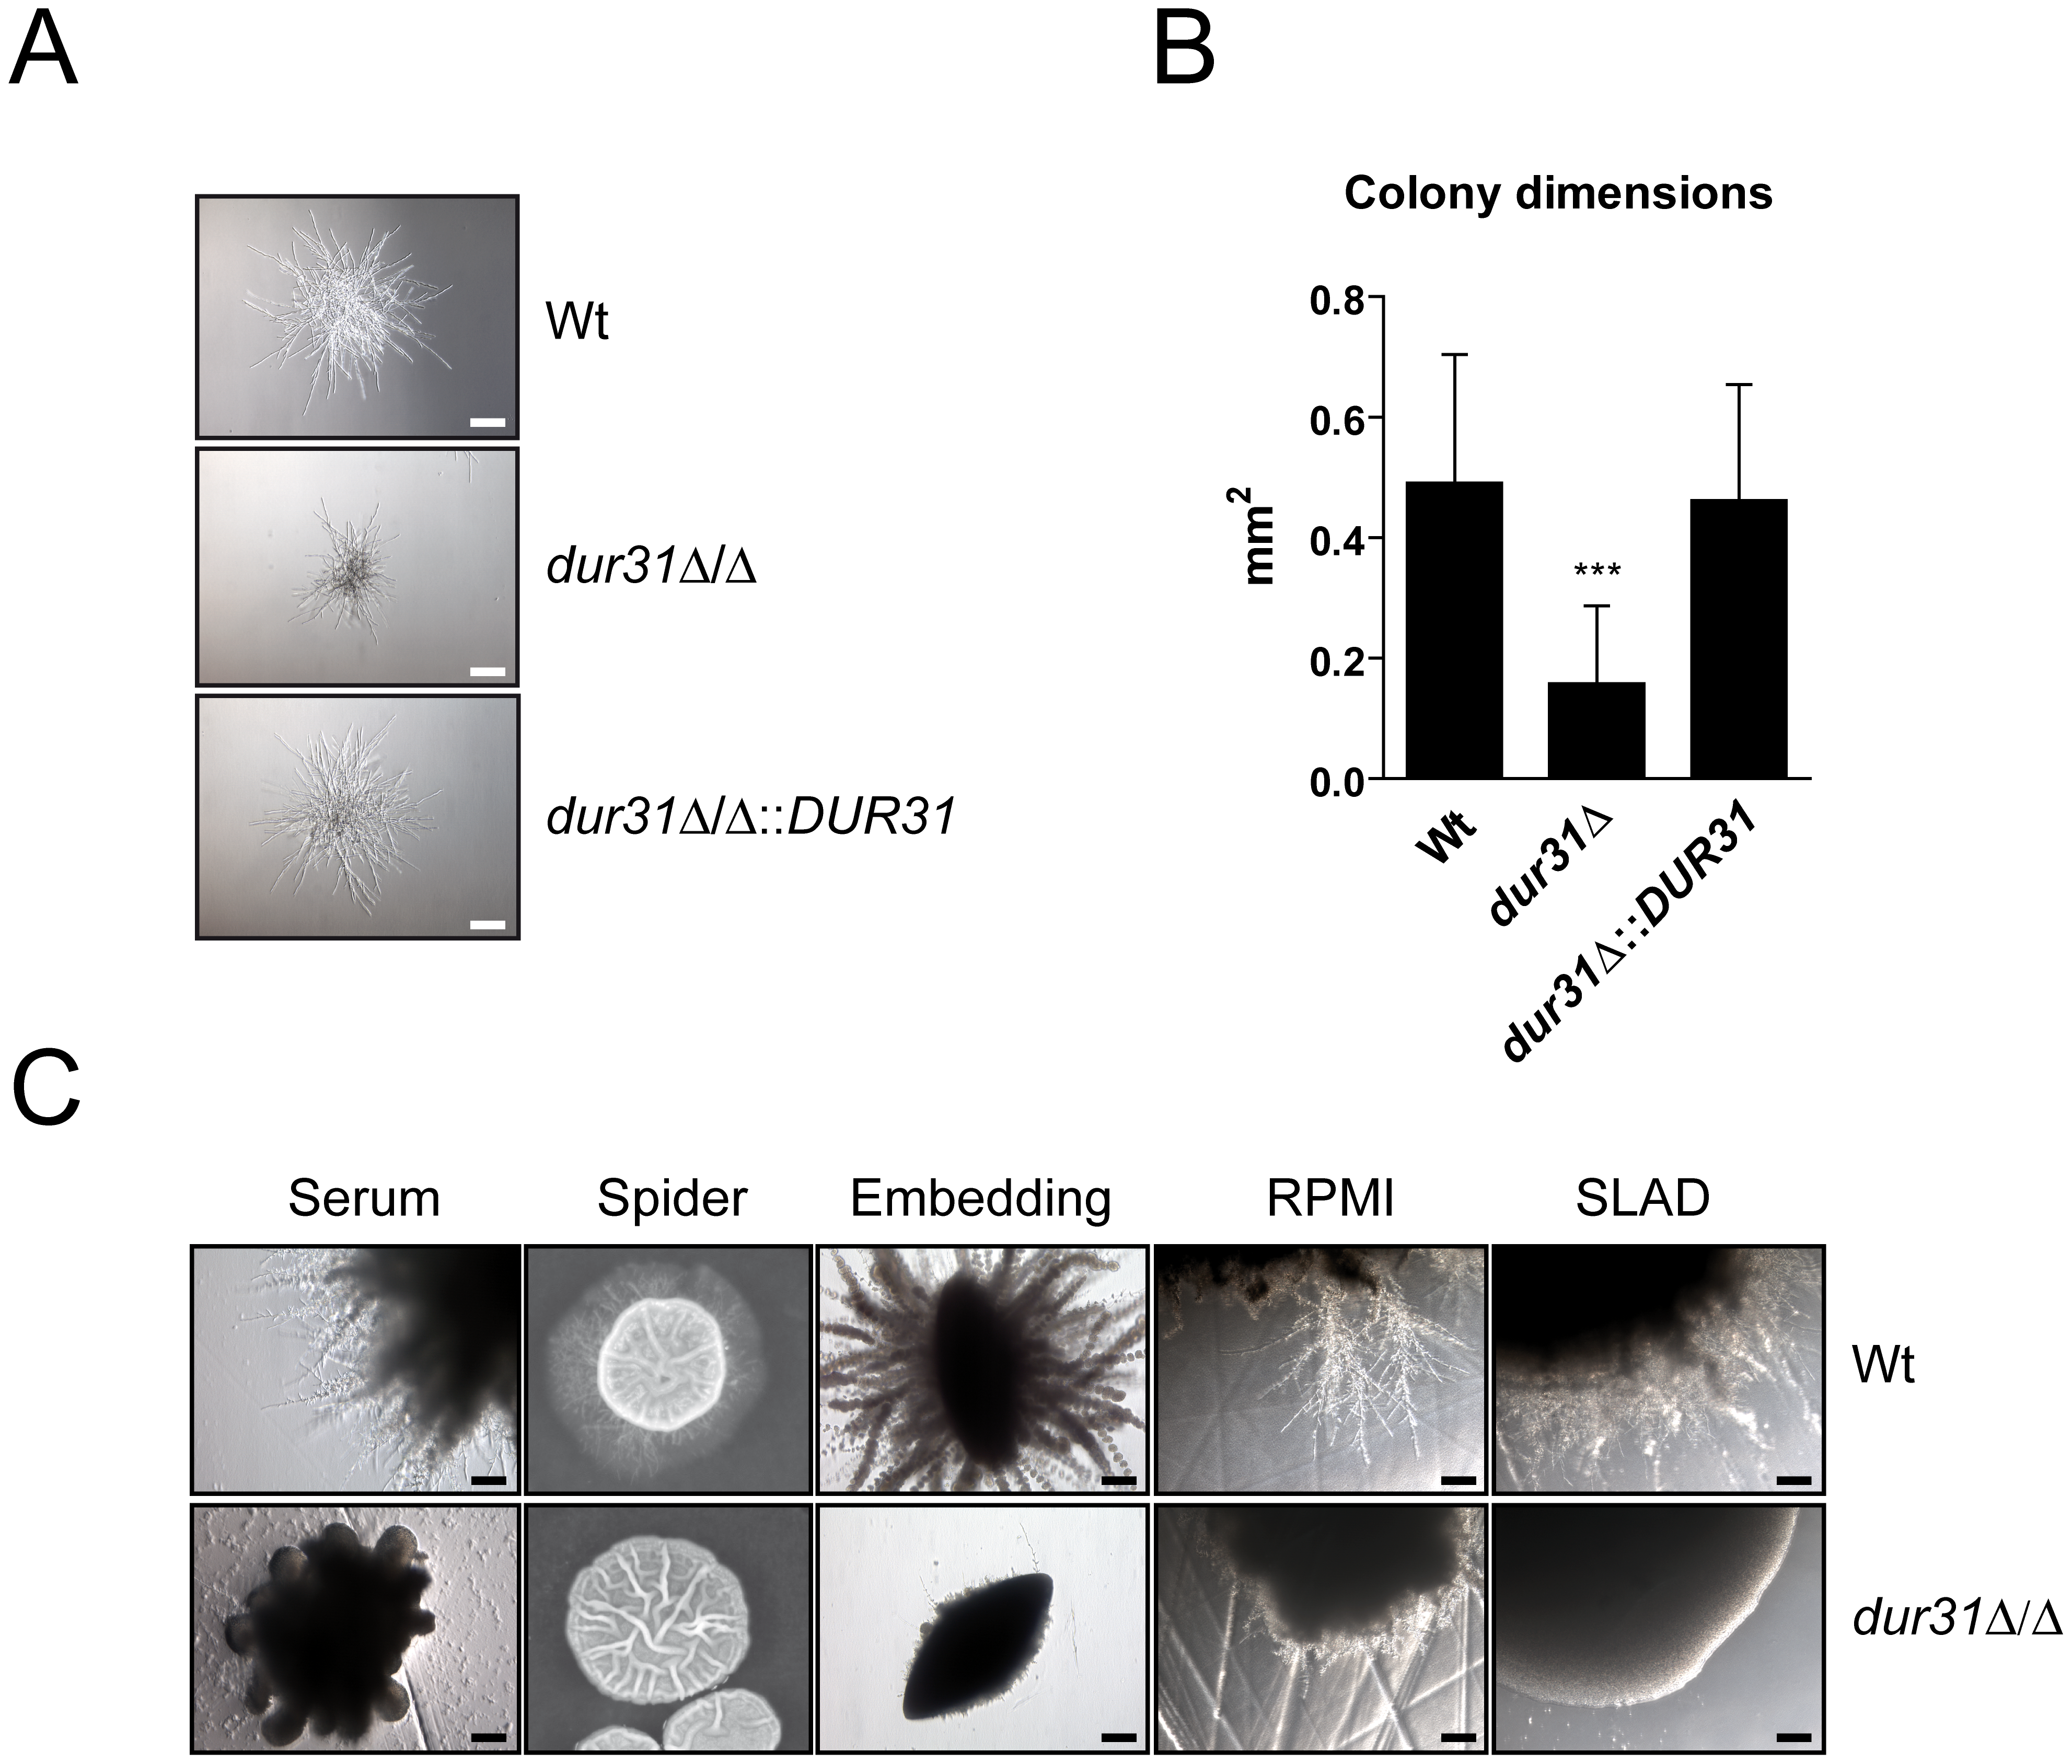 Dur31 is required for filamentous colony formation.